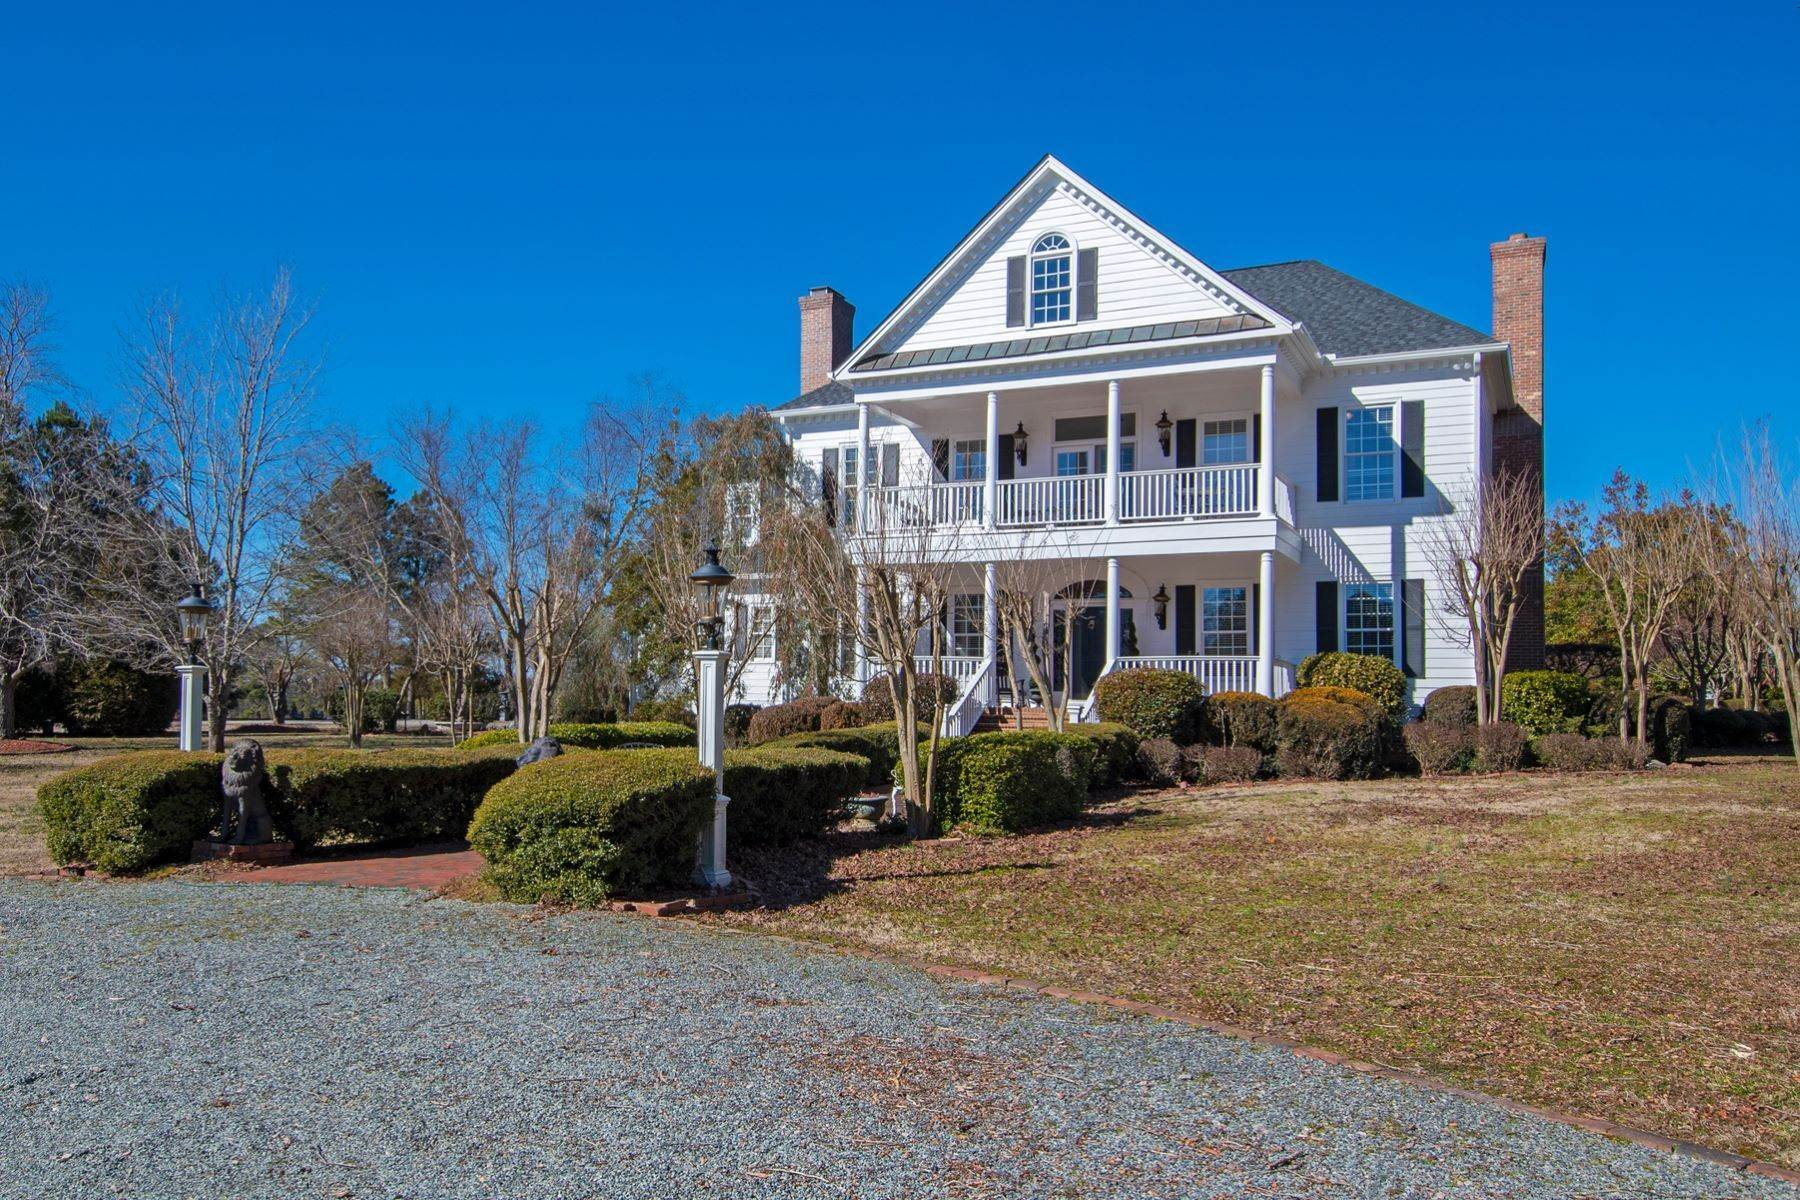 47. Single Family Homes for Sale at New Hope Estate 6325 Old Mill Farm Drive Wendell, North Carolina 27591 United States